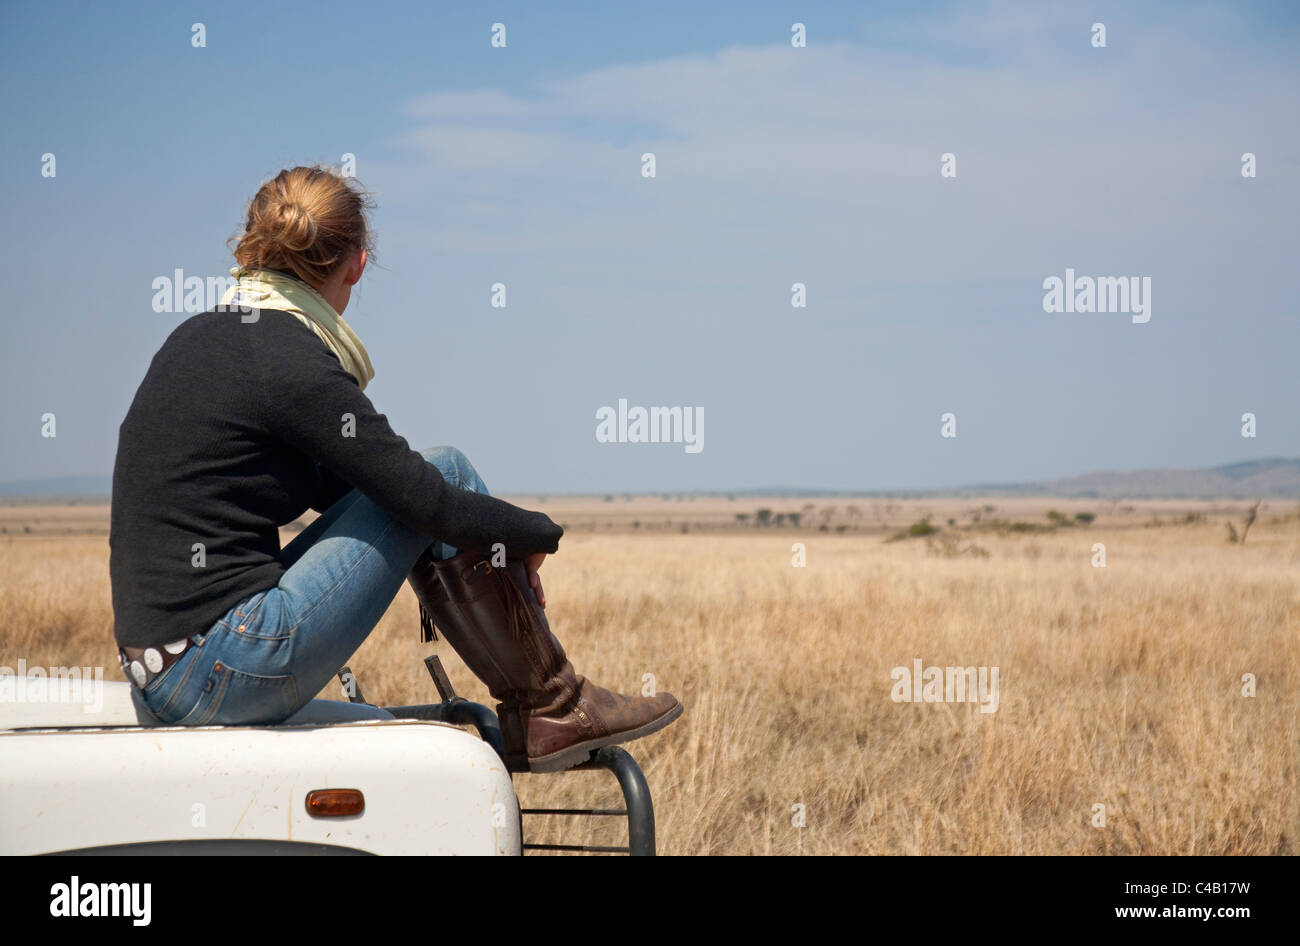 Tanzania, Serengeti. A woman looks out over the Serengeti plains from the bonnet of her Land Rover. MR. Stock Photo